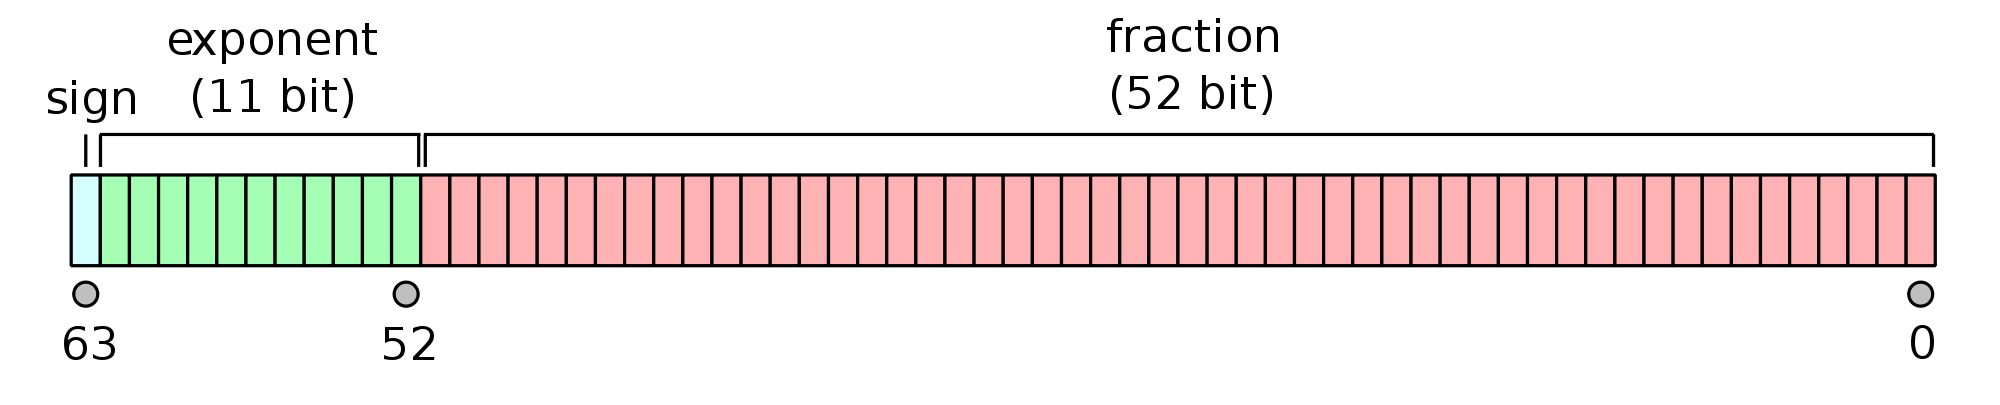 2000px-IEEE_754_Double_Floating_Point_Format.svg.png